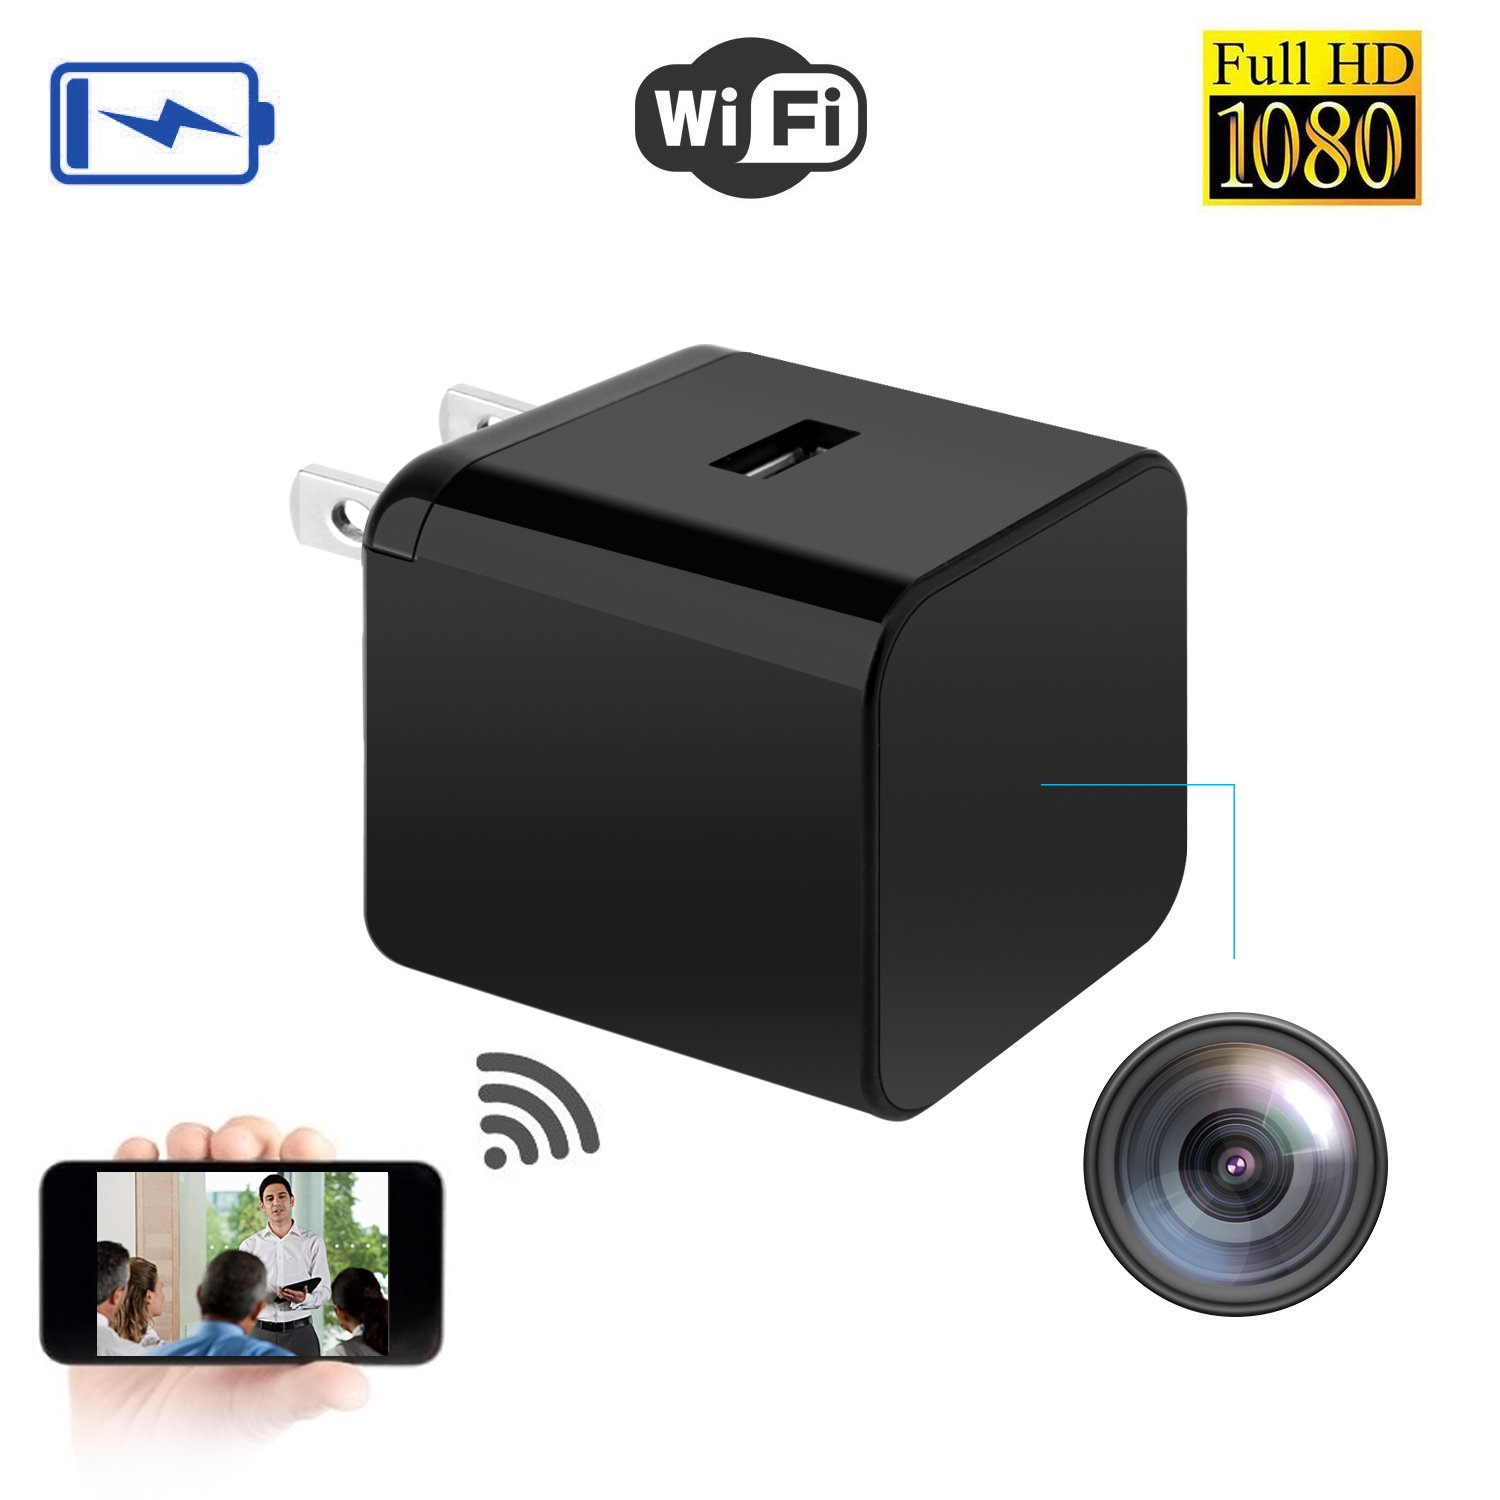 Kkeep Spy Camera 1080P Video Recorder Wireless IP Cameras Charger hidden camera Adapter Camera WiFi Remote View Home Small Mini Security Monitoring 140°Angle Nanny Cam Night Vision Motion Detection